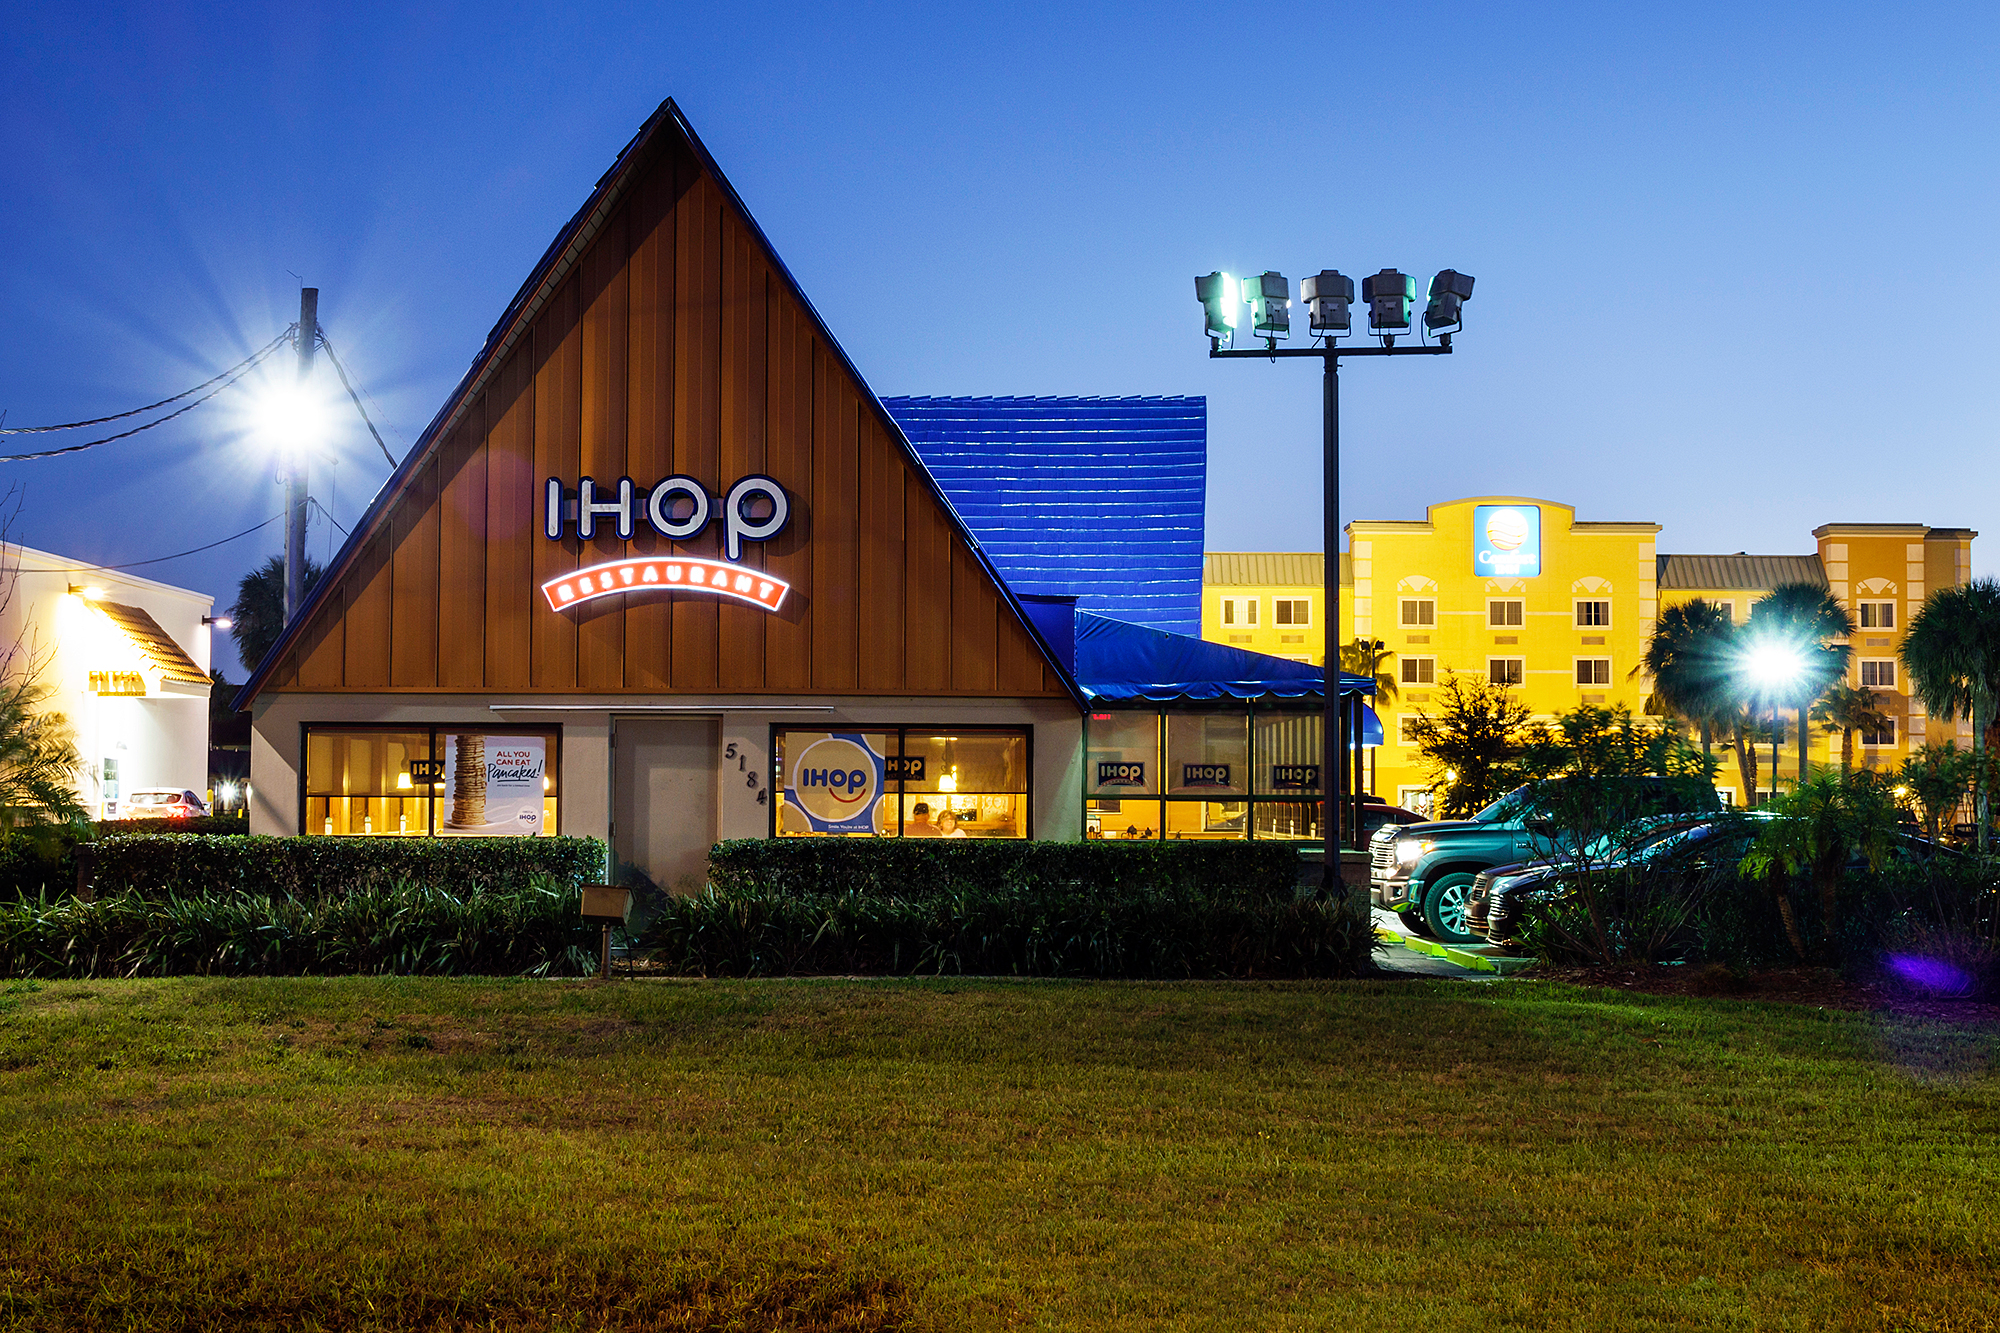 The International House of Pancakes is (allegedly) changing its name